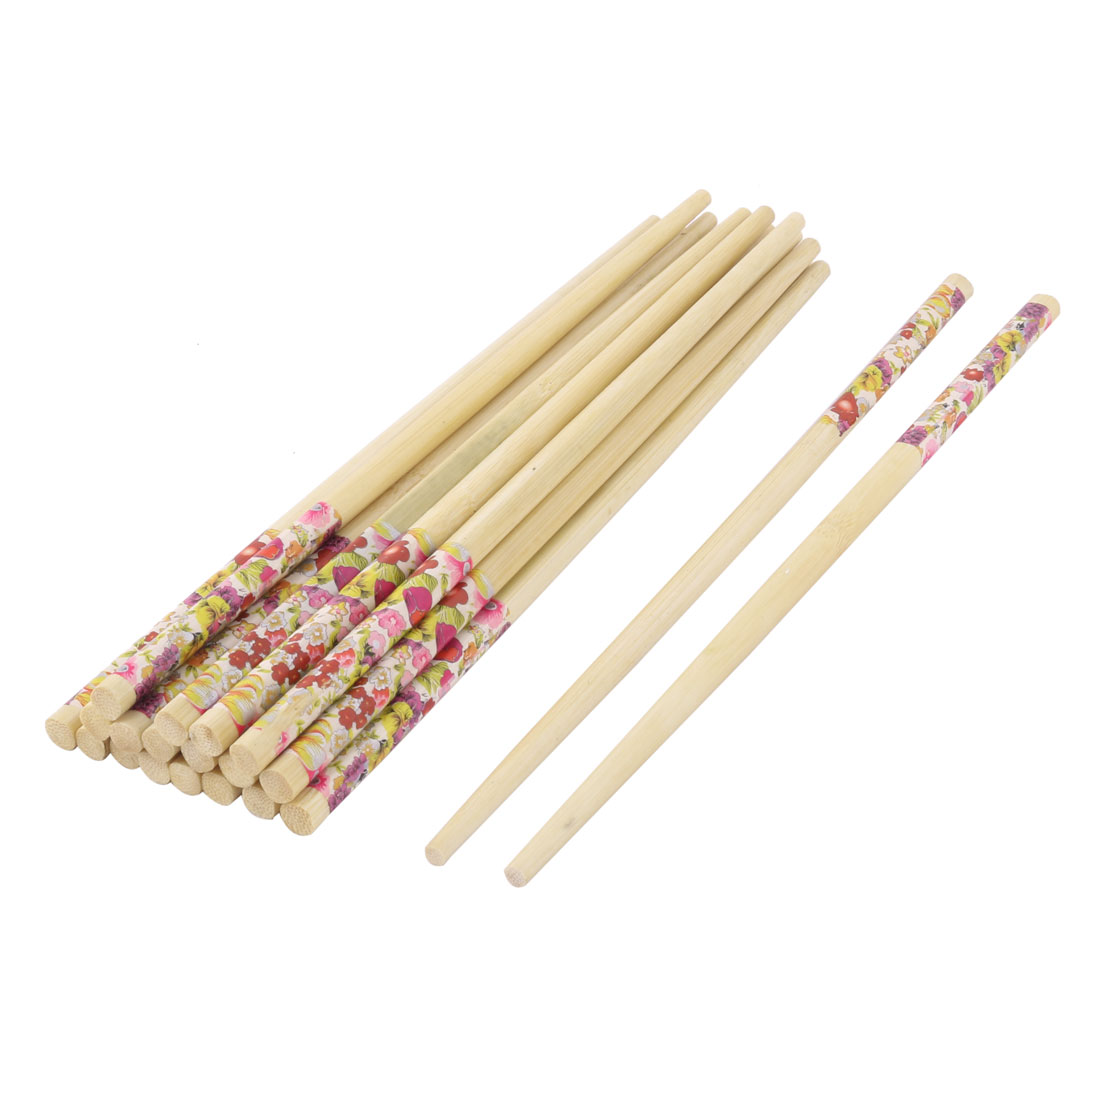 Home Tableware Bamboo Non-slip Eating Food Meat Chopsticks Multicolor 10 Pairs